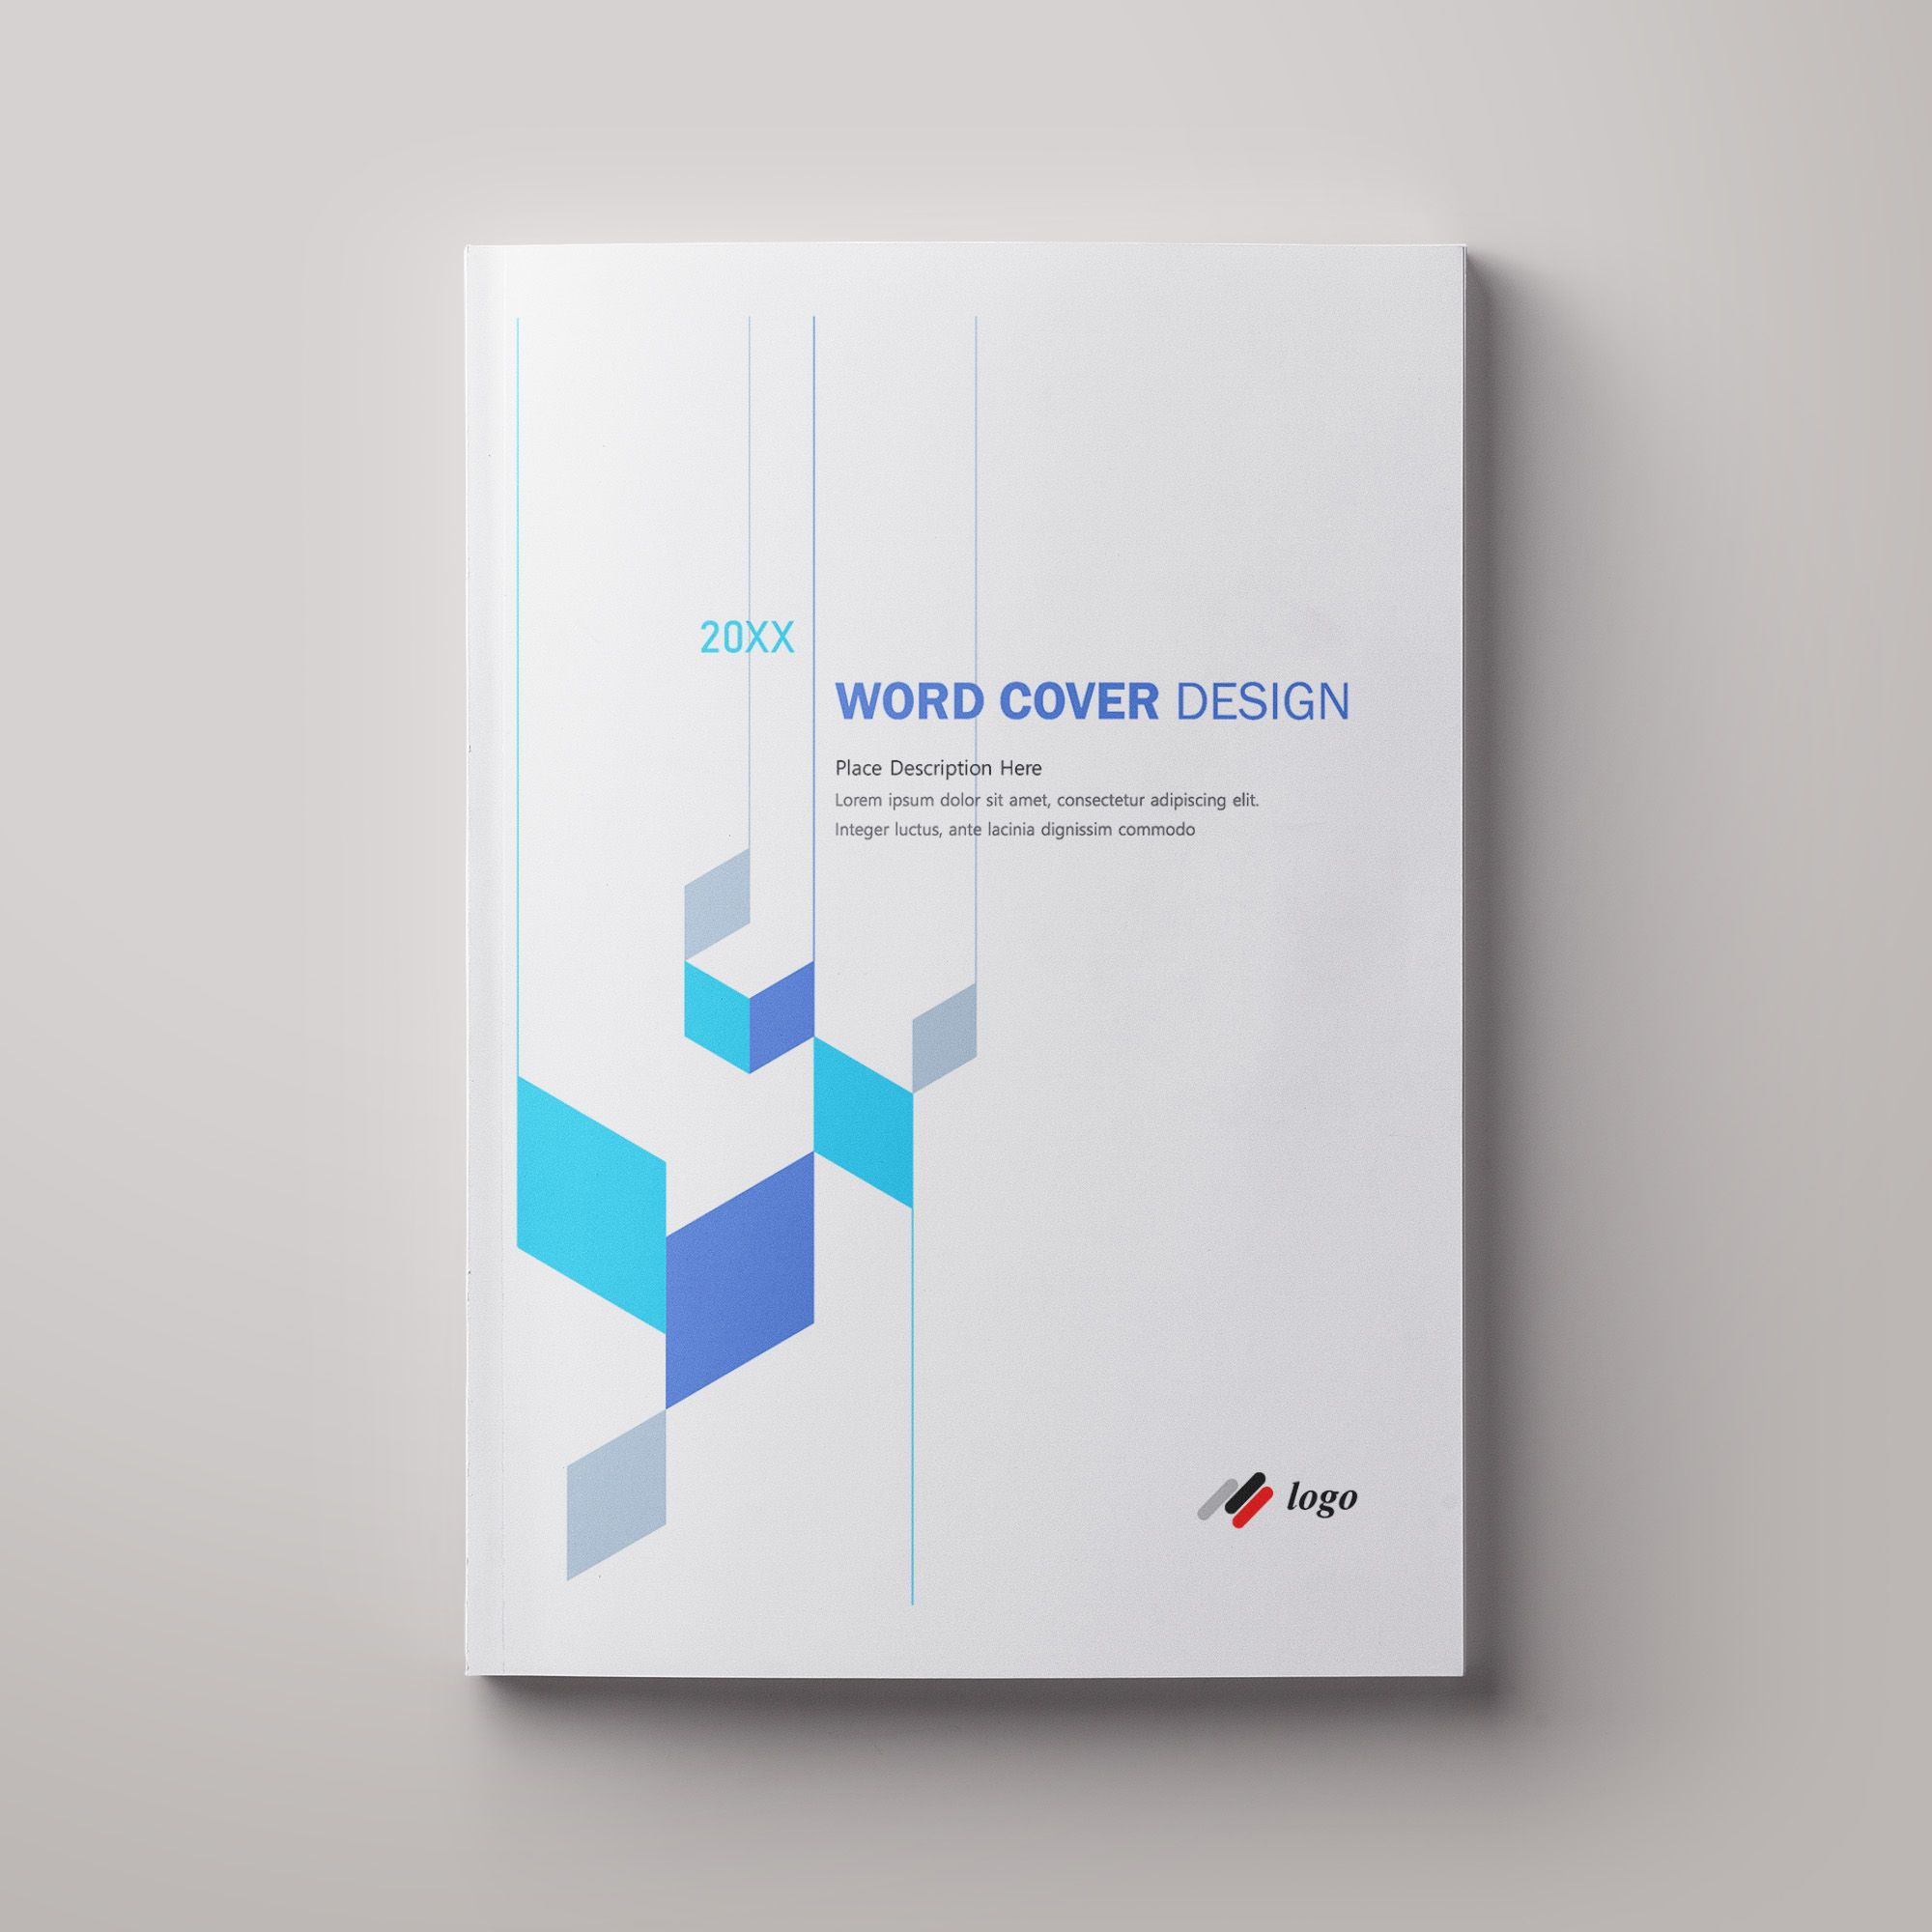 Https Msword Free Blogspot Com 2020 02 Microsoft Word Cover Templates 43 Free Html In 2021 Brochure Cover Design Booklet Cover Design Book Design Layout